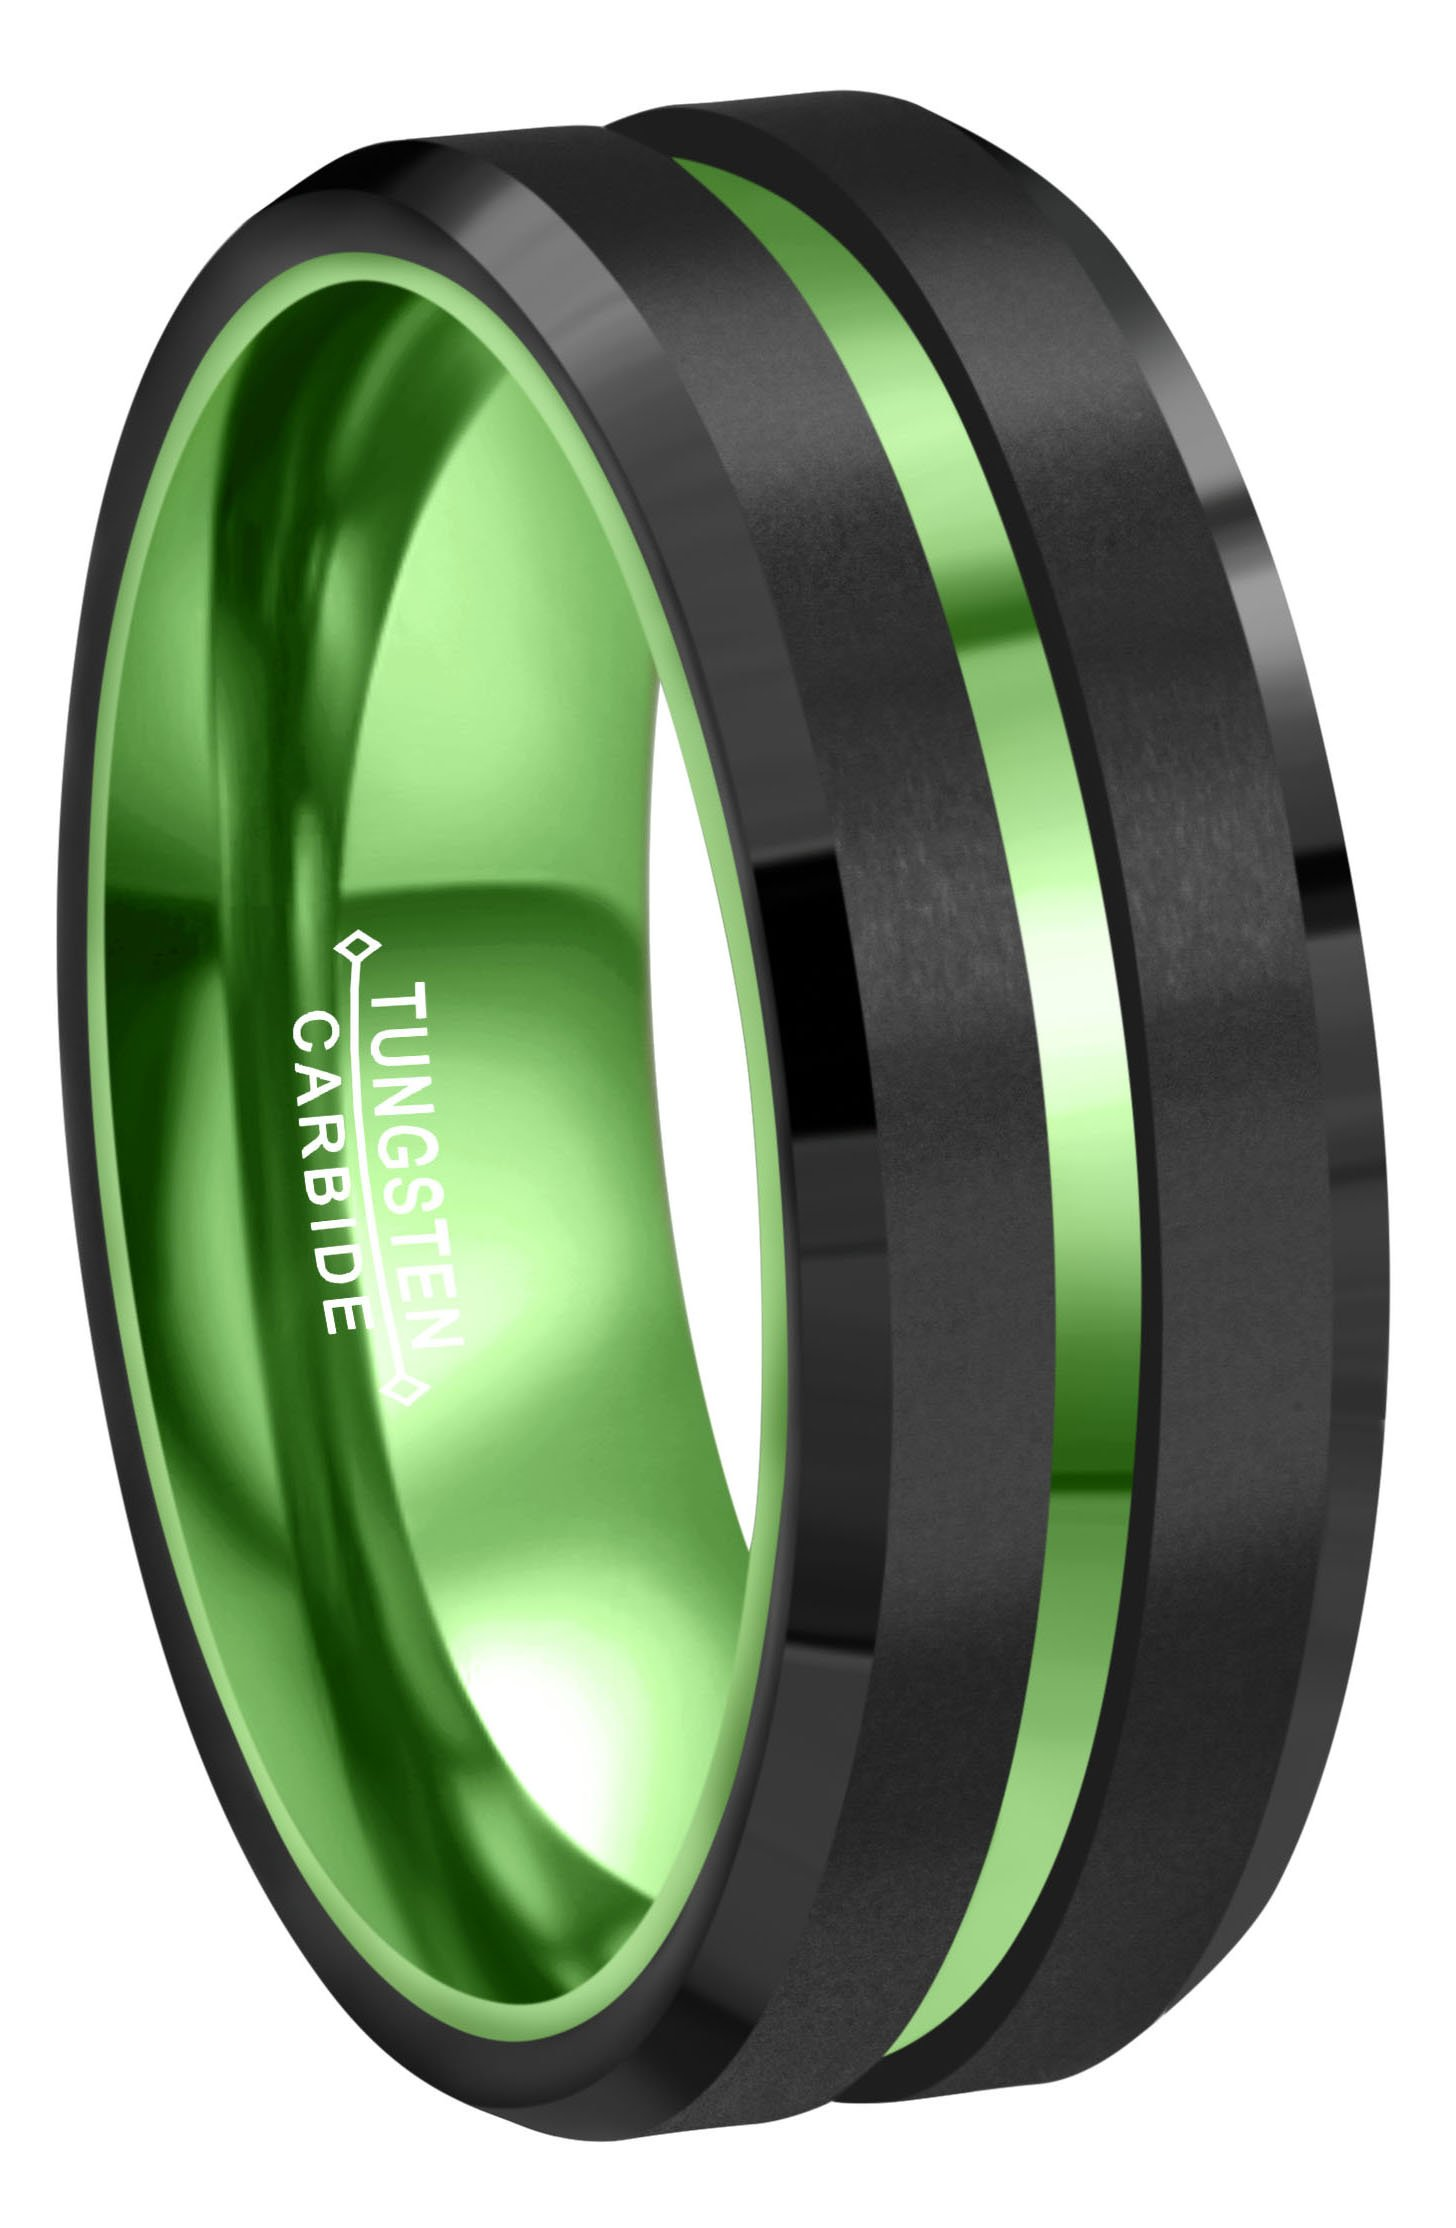 Crownal 8mm Green Black Tungsten Wedding Bands Rings Men Women Green Groove Matte Finish Size 6 To 16 (8mm,10)